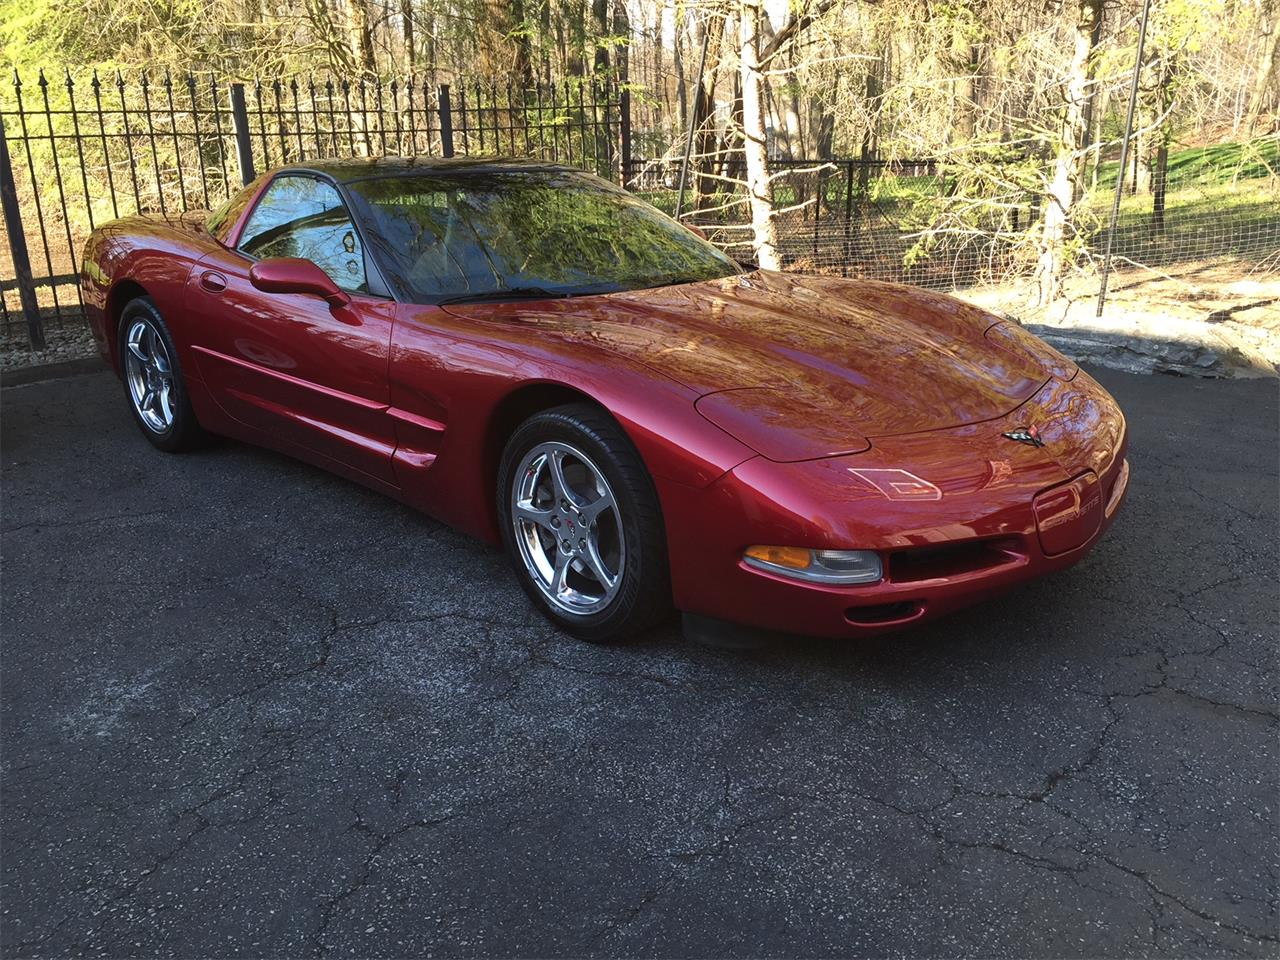 2001 Chevrolet Corvette (CC-1219453) for sale in Armonk, New York